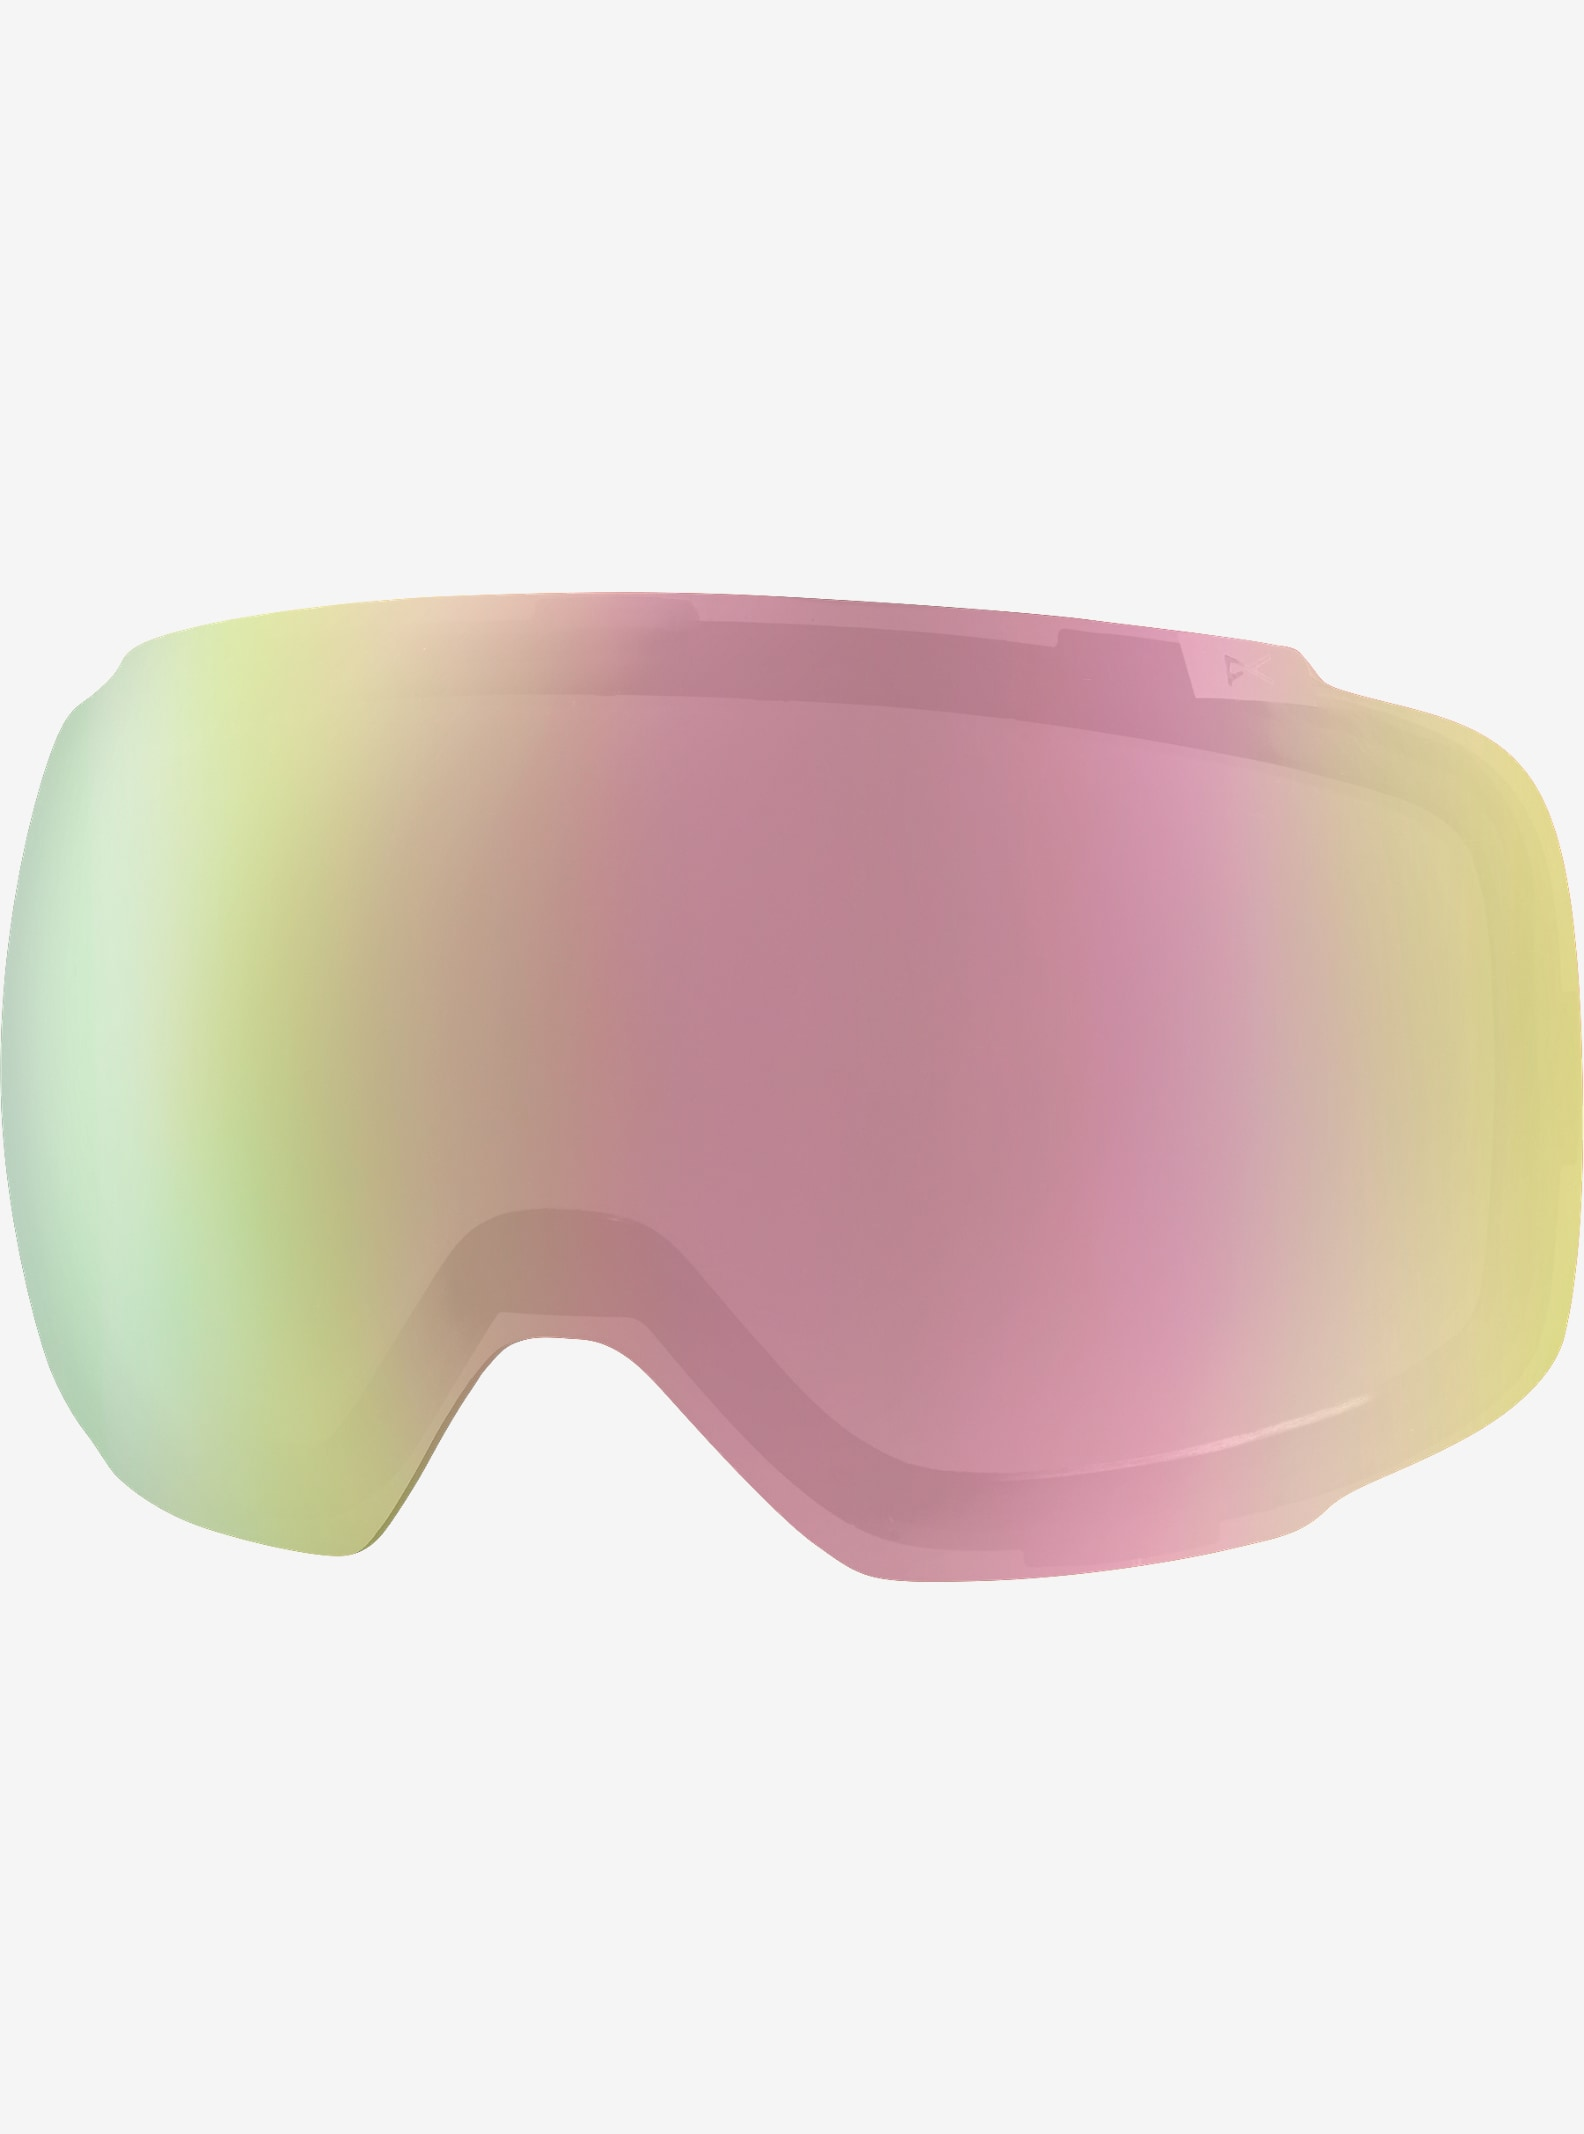 anon. M2 Goggle Lens shown in Pink Ice Japan (80% VLT)